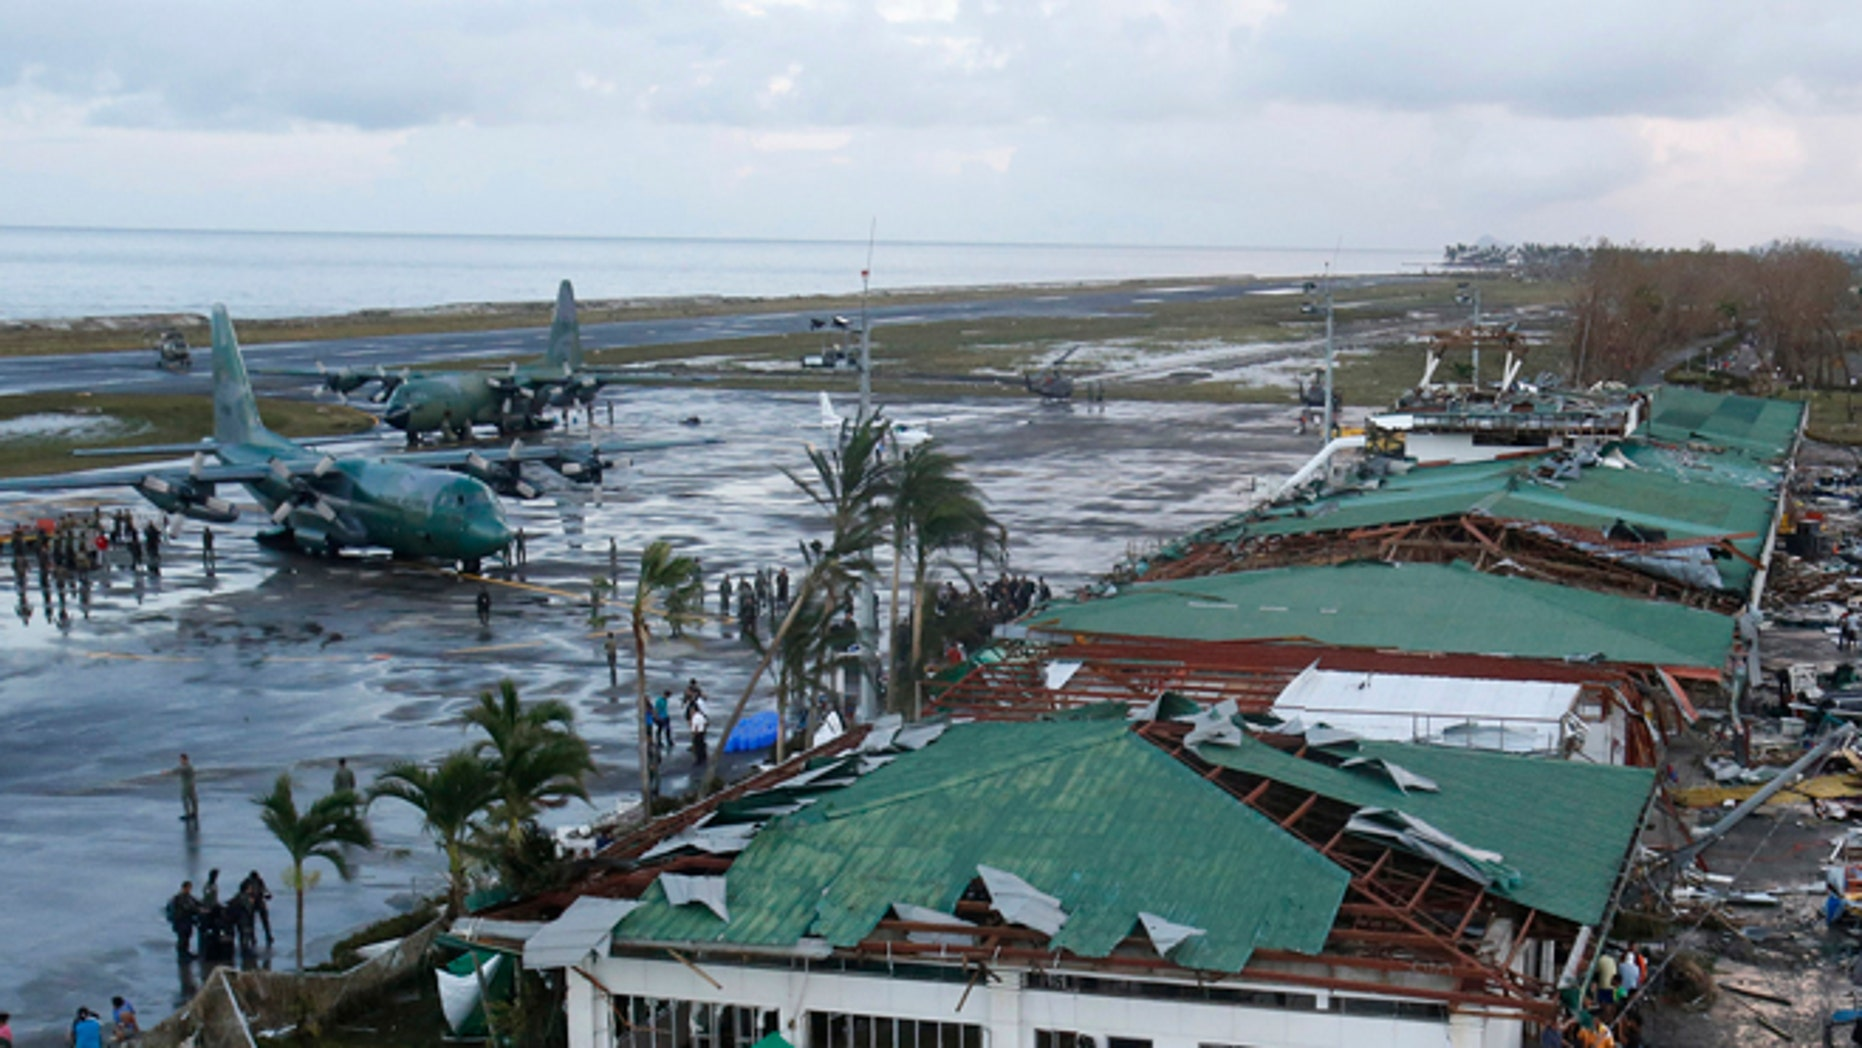 FILE: Nov. 9, 2013: Philippine military C130 cargo planes ferrys supplies park at the tarmac outside an airport after super Typhoon Haiyan battered Tacloban city in central Philippines.